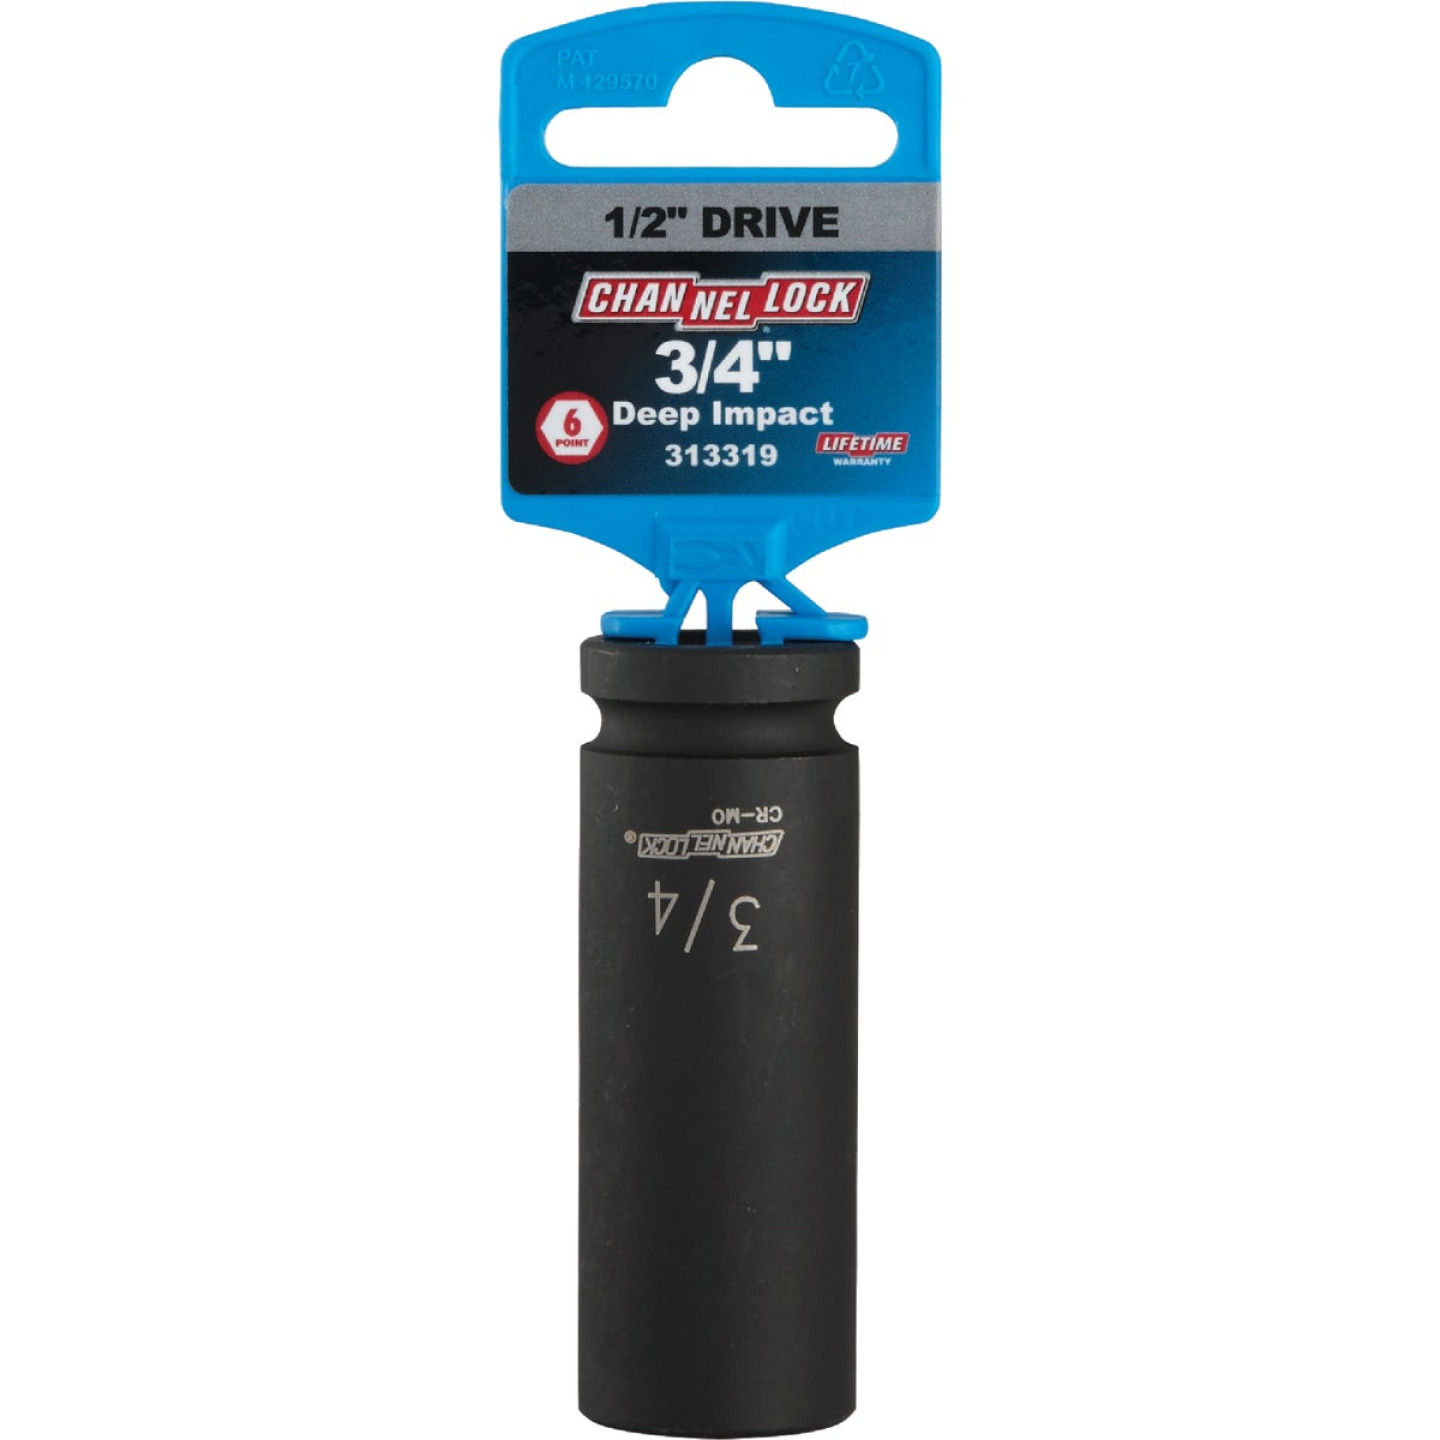 Channellock 1/2 In. Drive 3/4 In. 6-Point Deep Standard Impact Socket Image 2